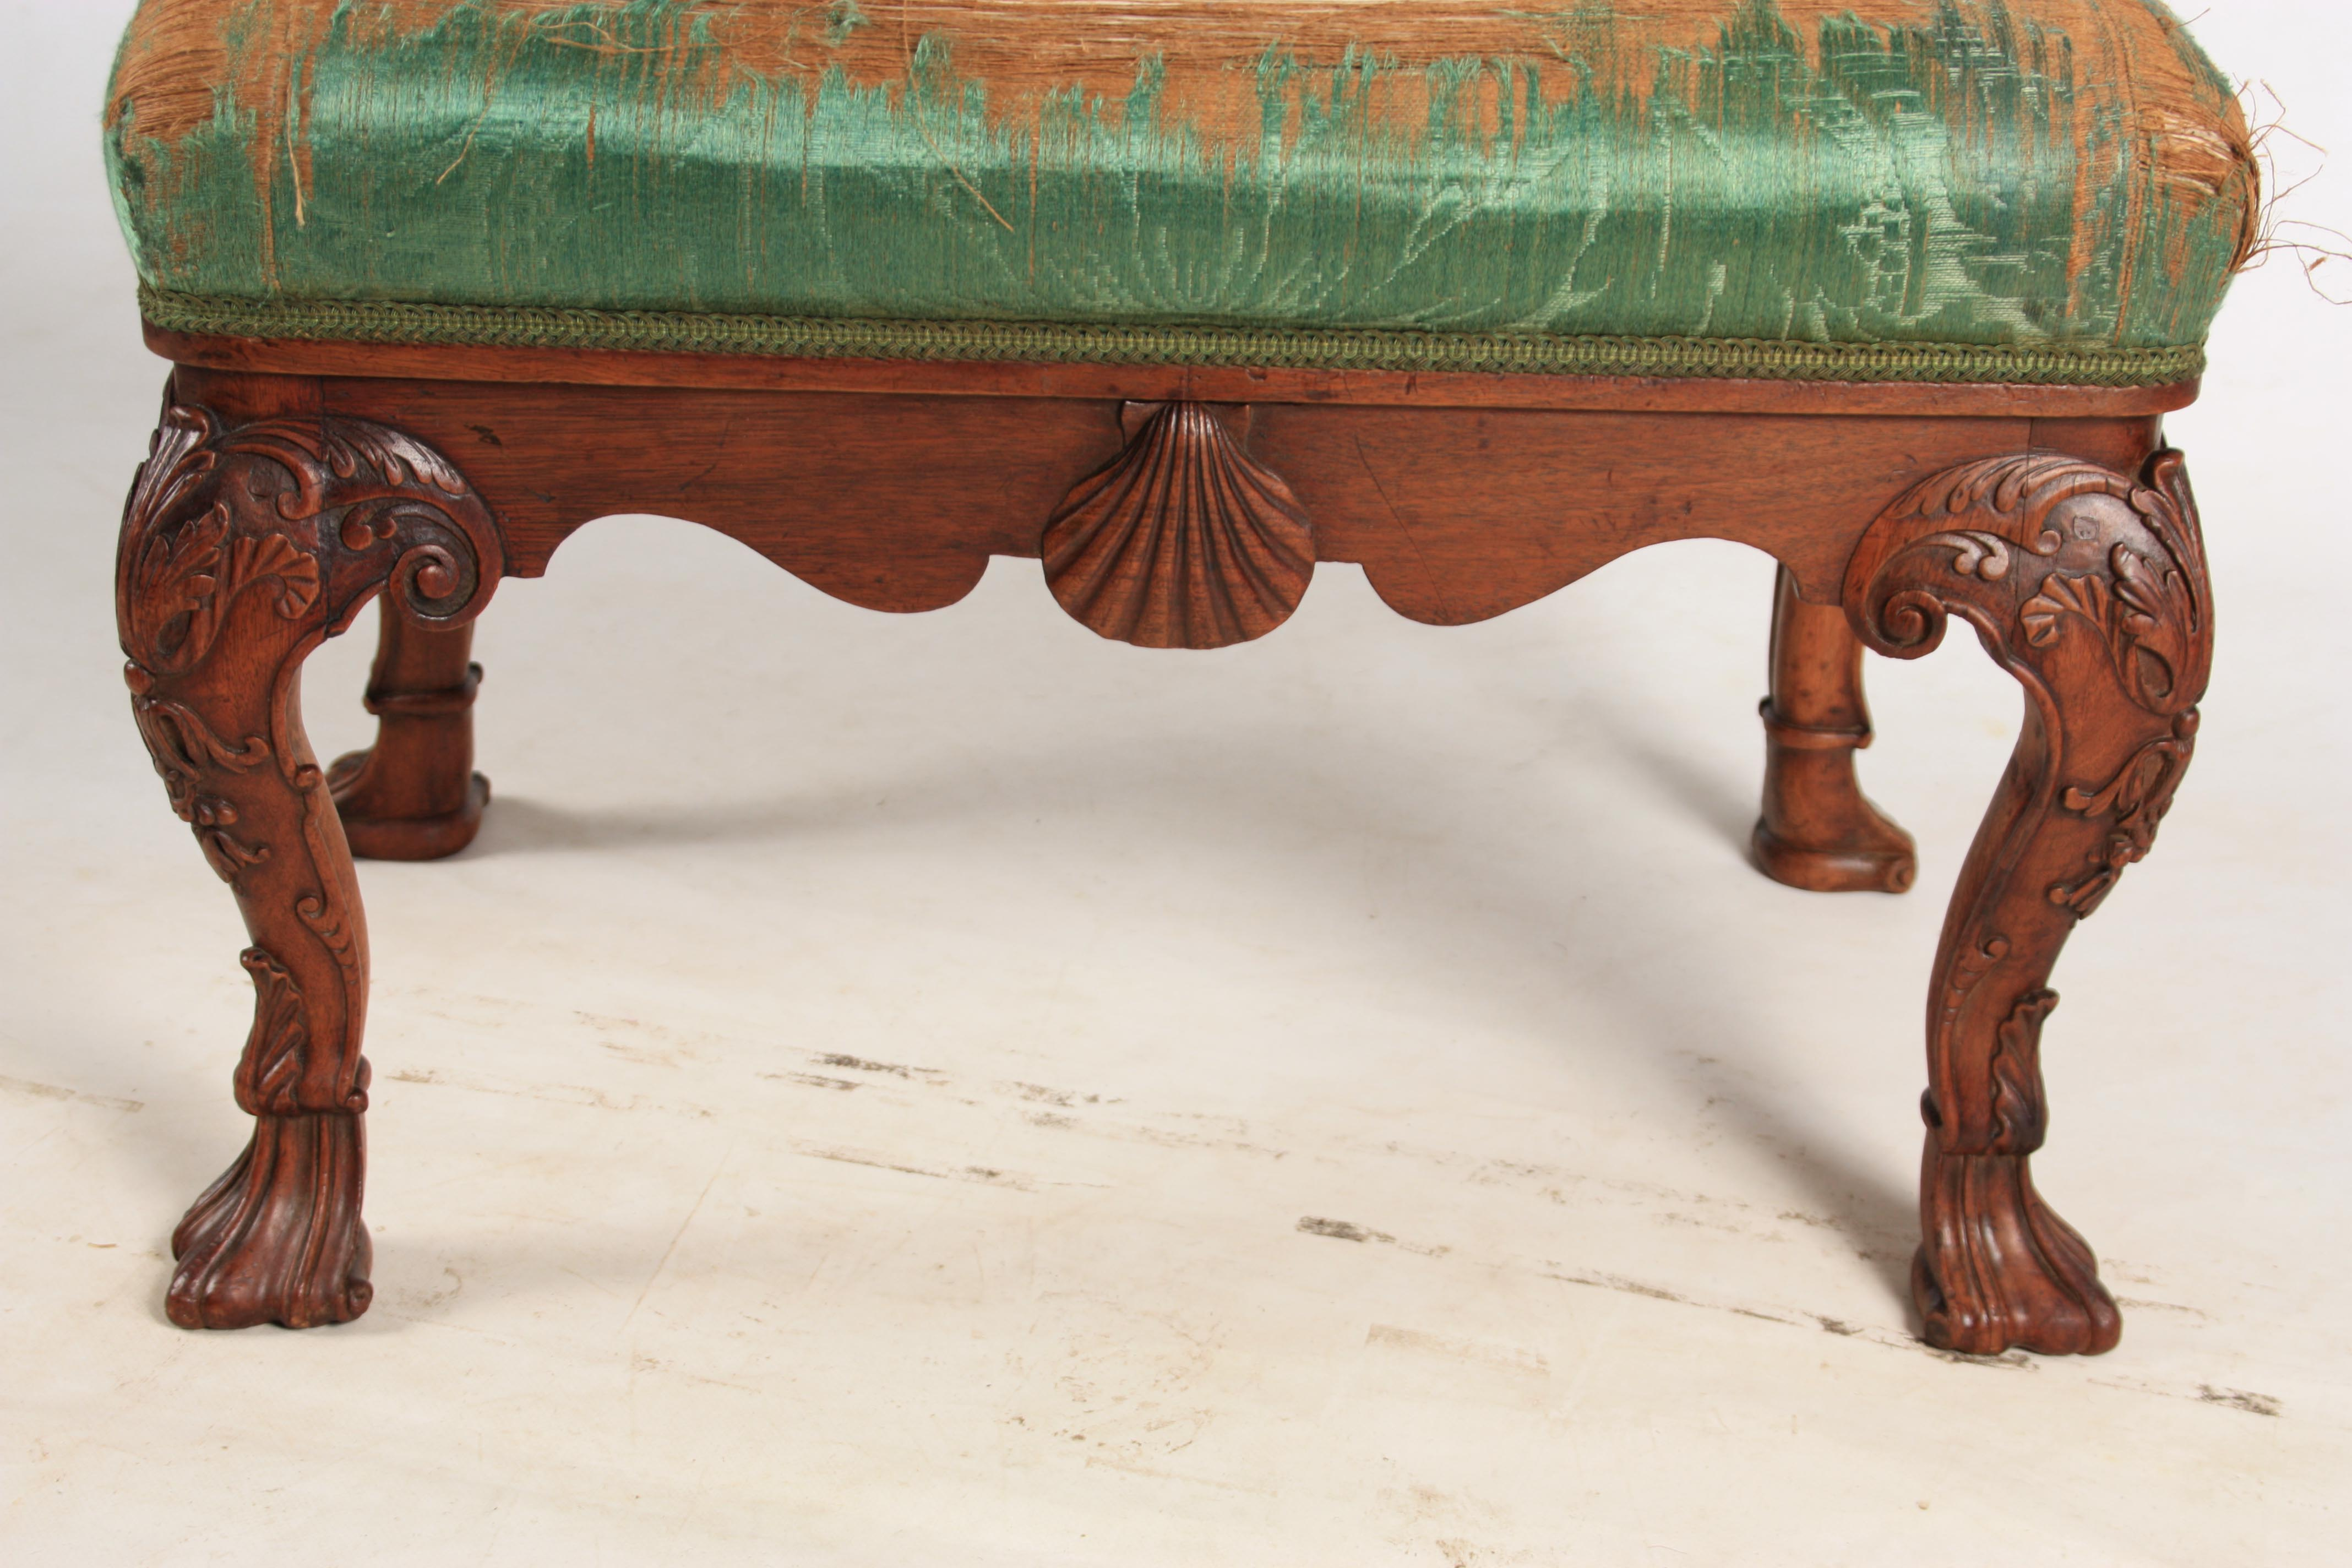 A MID 18TH CENTURY IRISH STYLE MAHOGANY DRESSING TABLE STOOL with upholstered top above shaped rails - Image 5 of 7